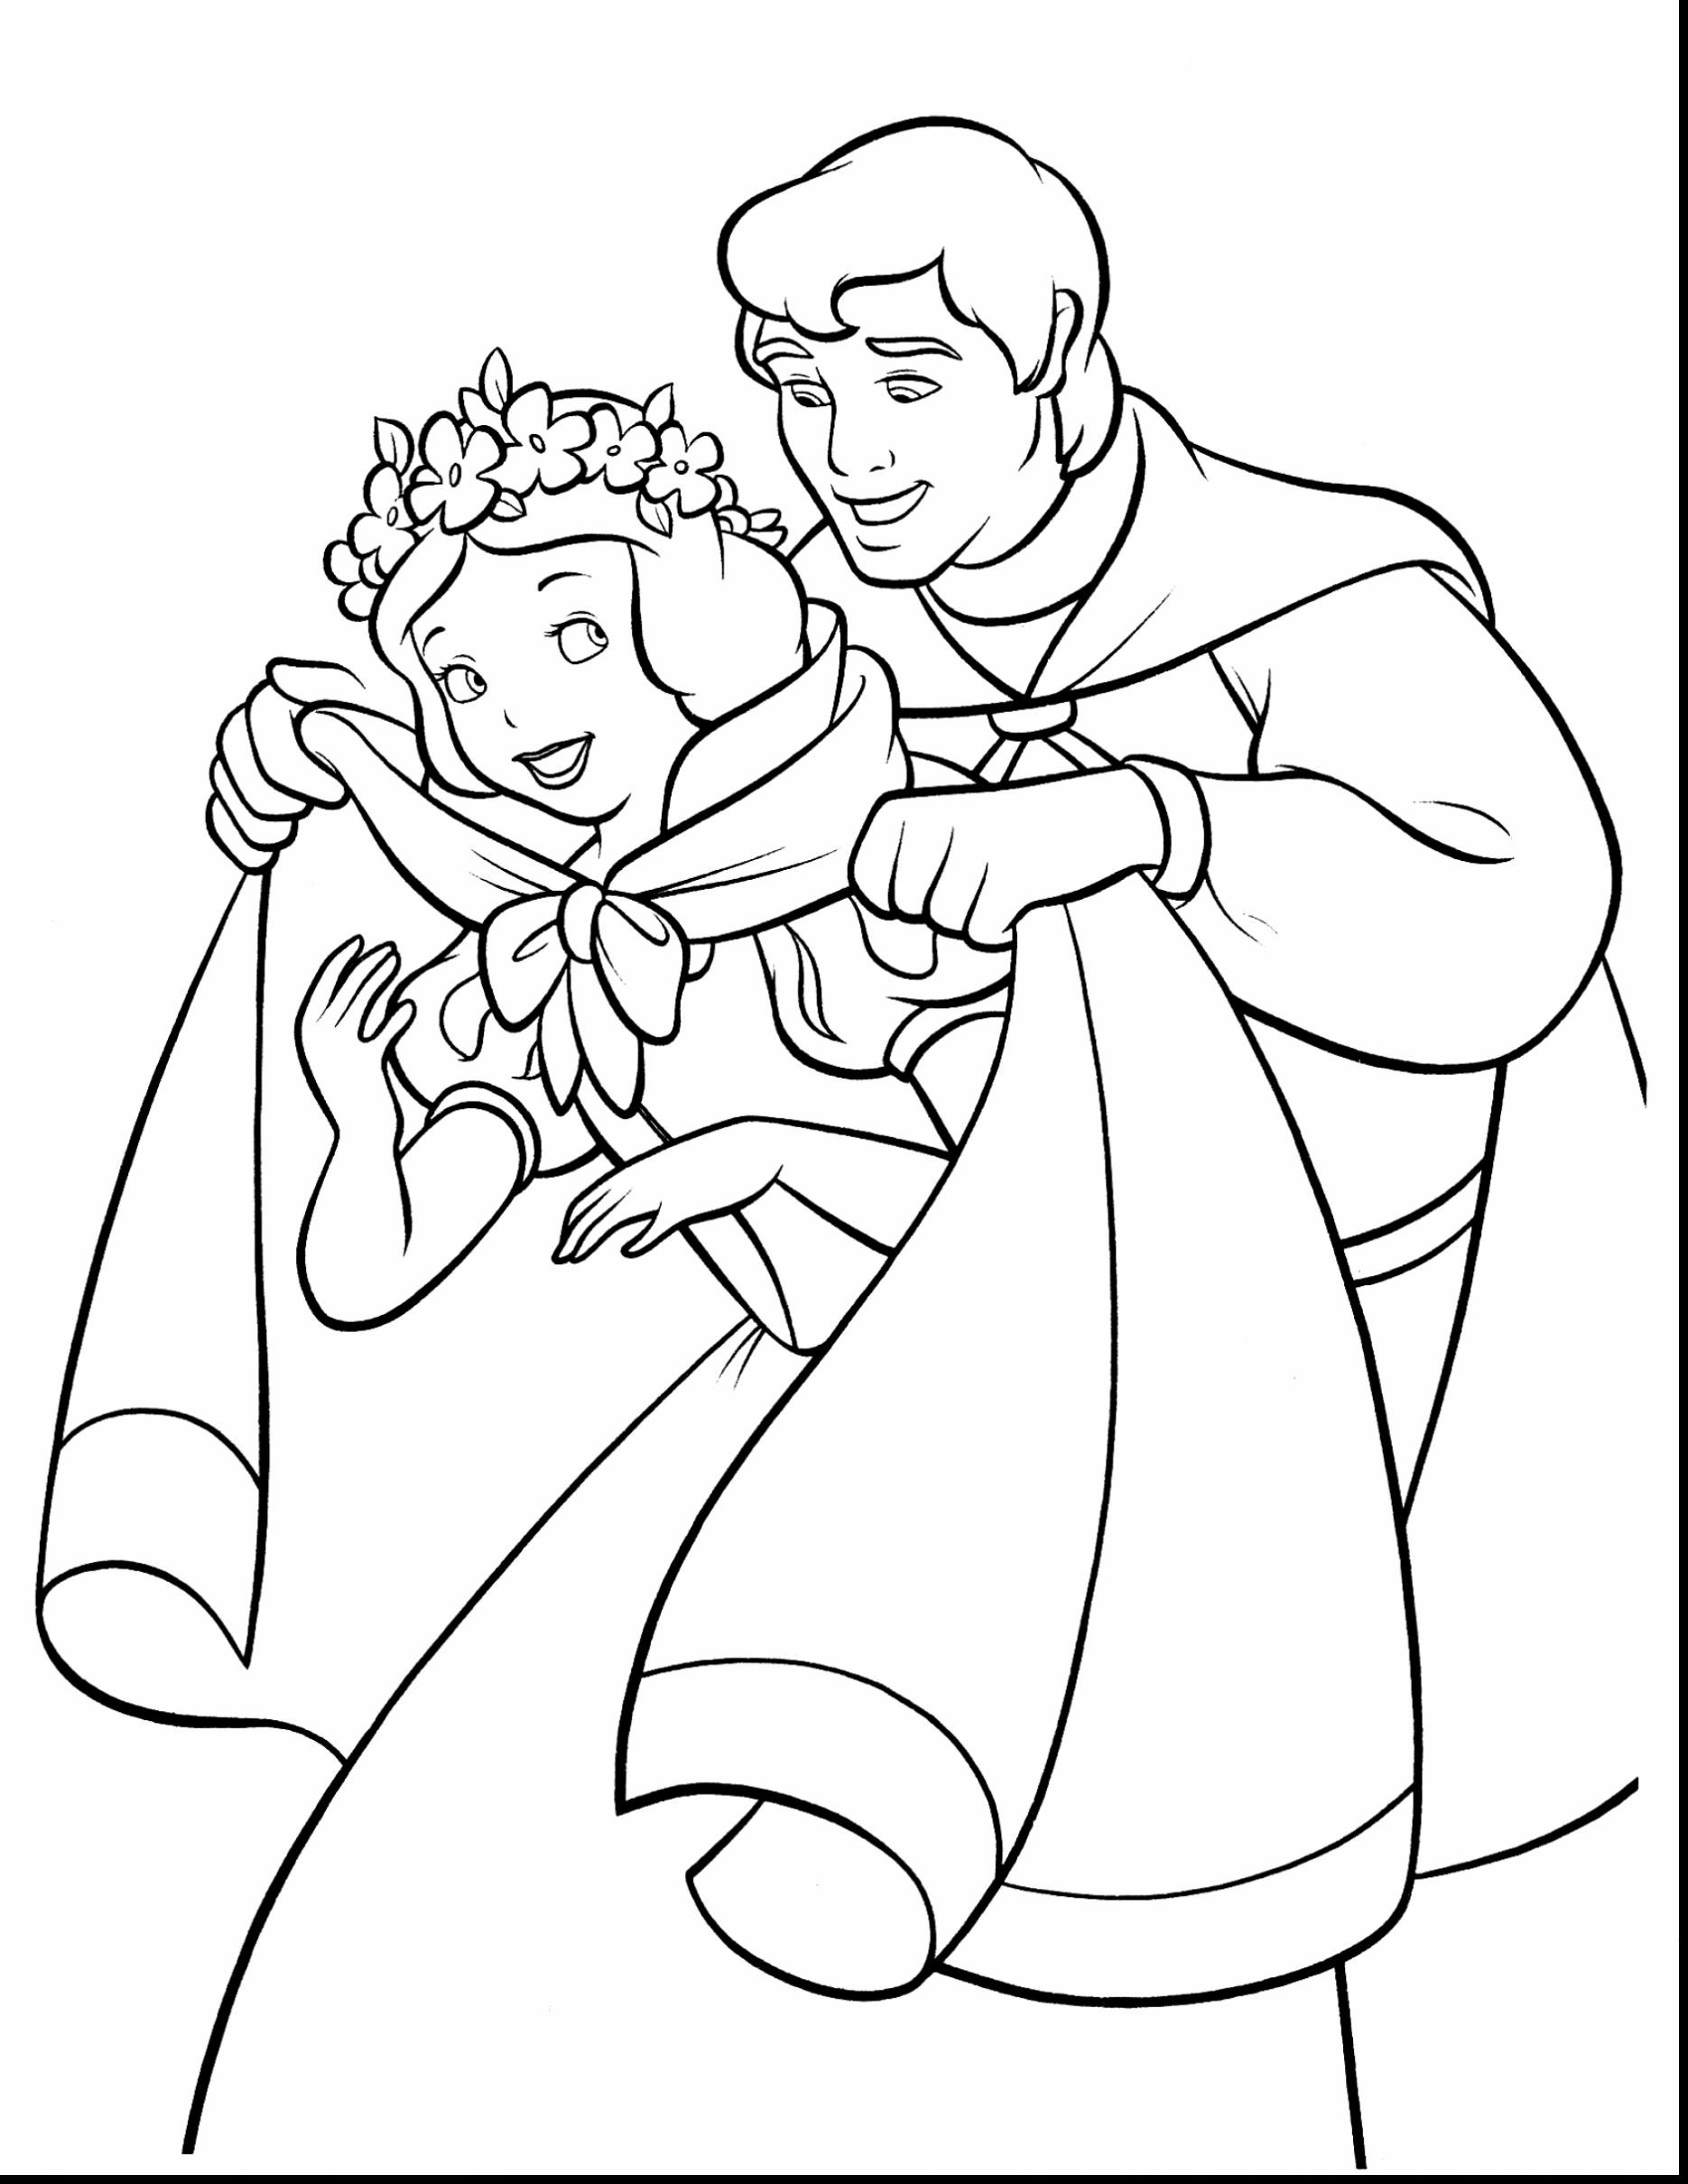 Rapunzel And Pascal Coloring Pages At Getdrawings